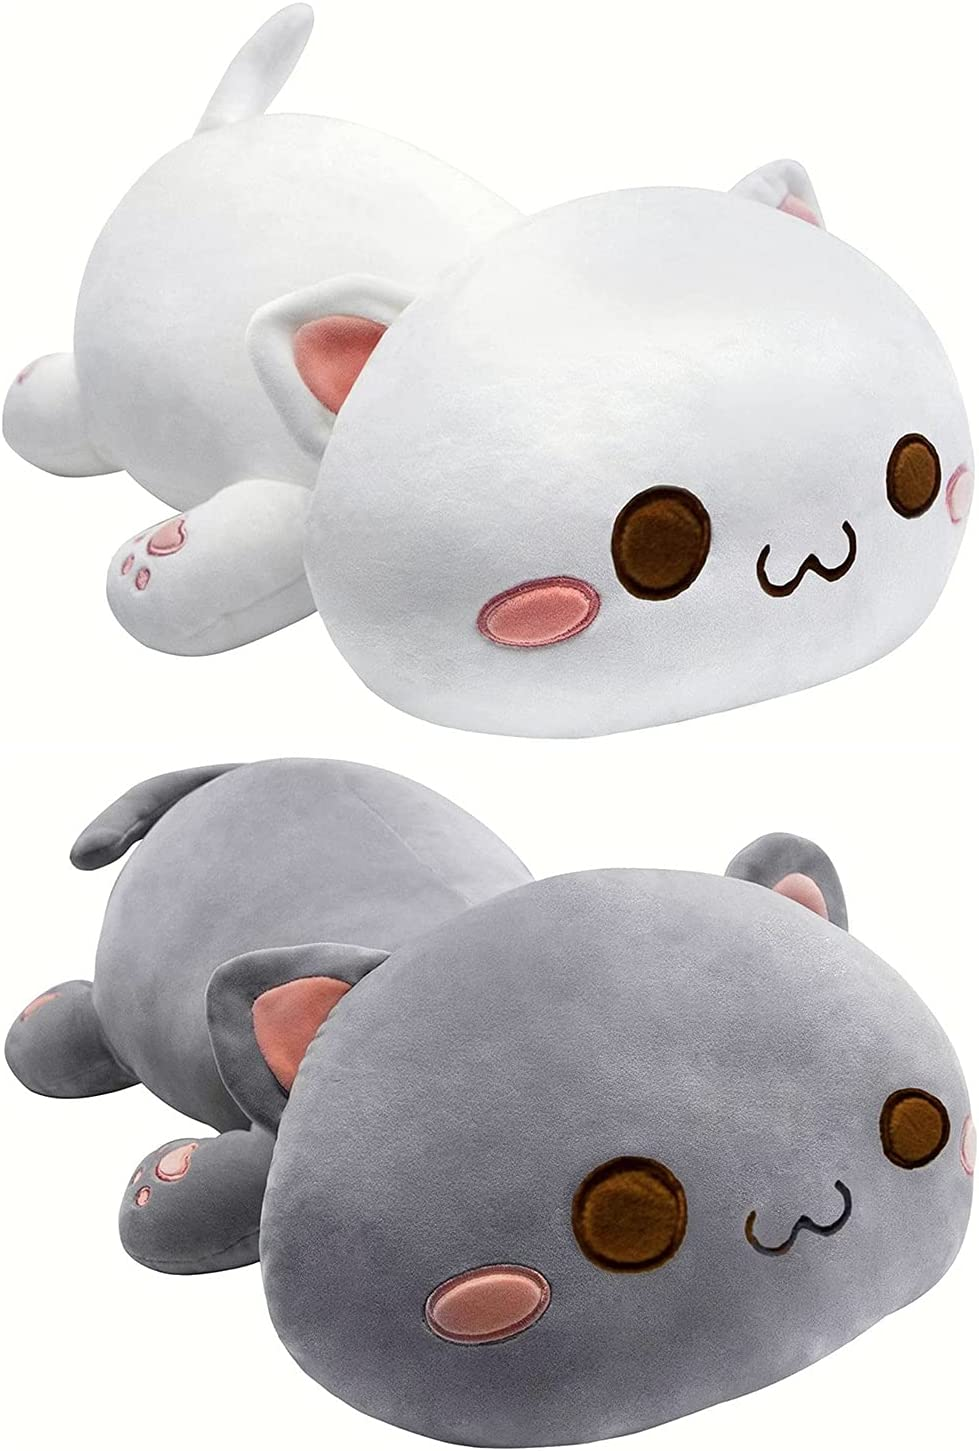 Bombing new Ranking TOP12 work GXLXDHSH Cute cat Plush Stuffed Toys Soft Pillow for Chi Kitten